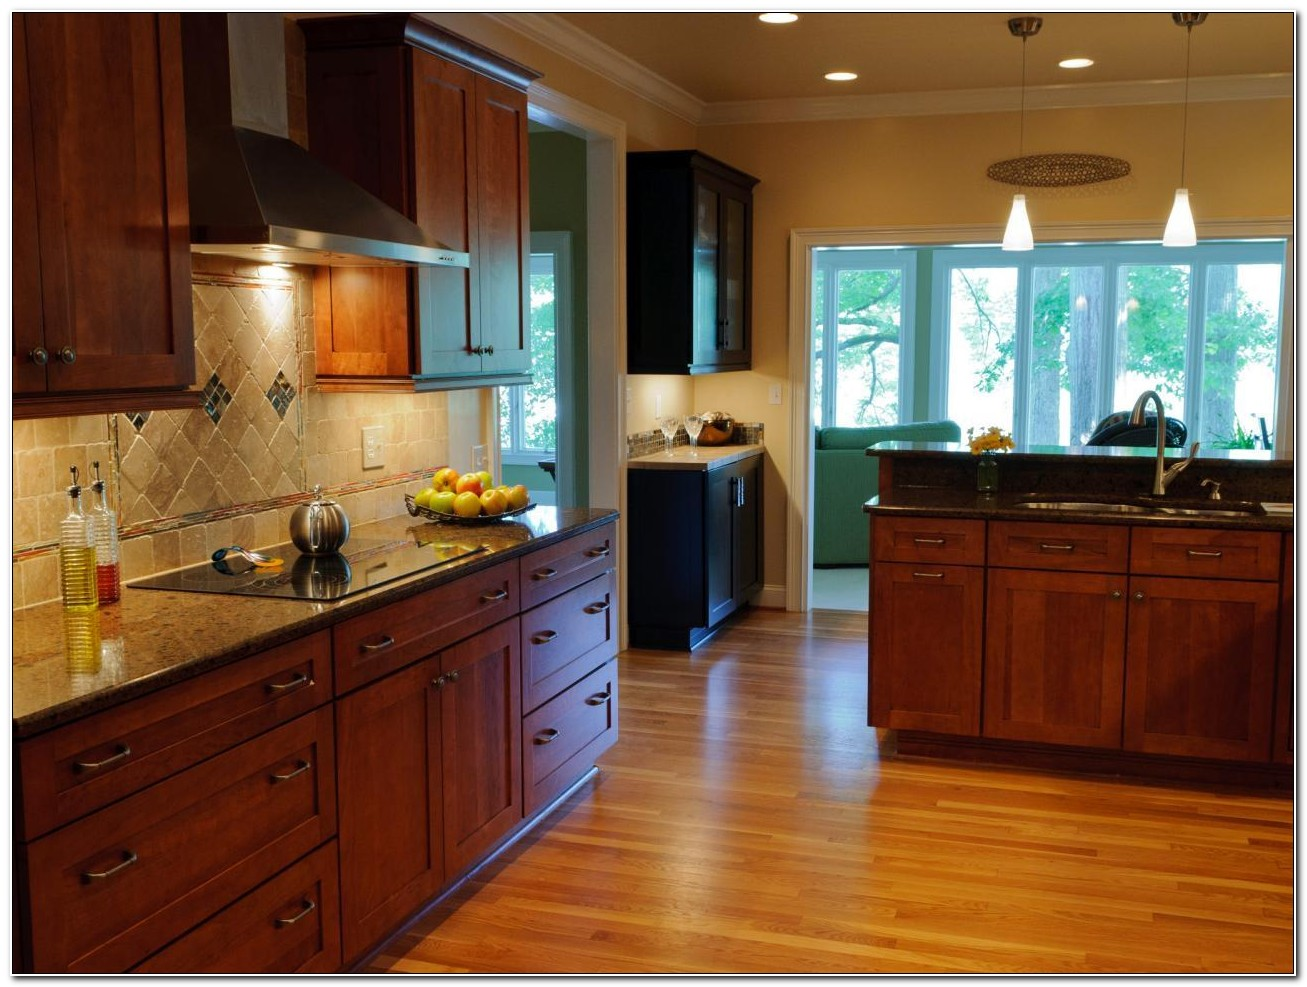 Refinishing Wood Stained Kitchen Cabinets